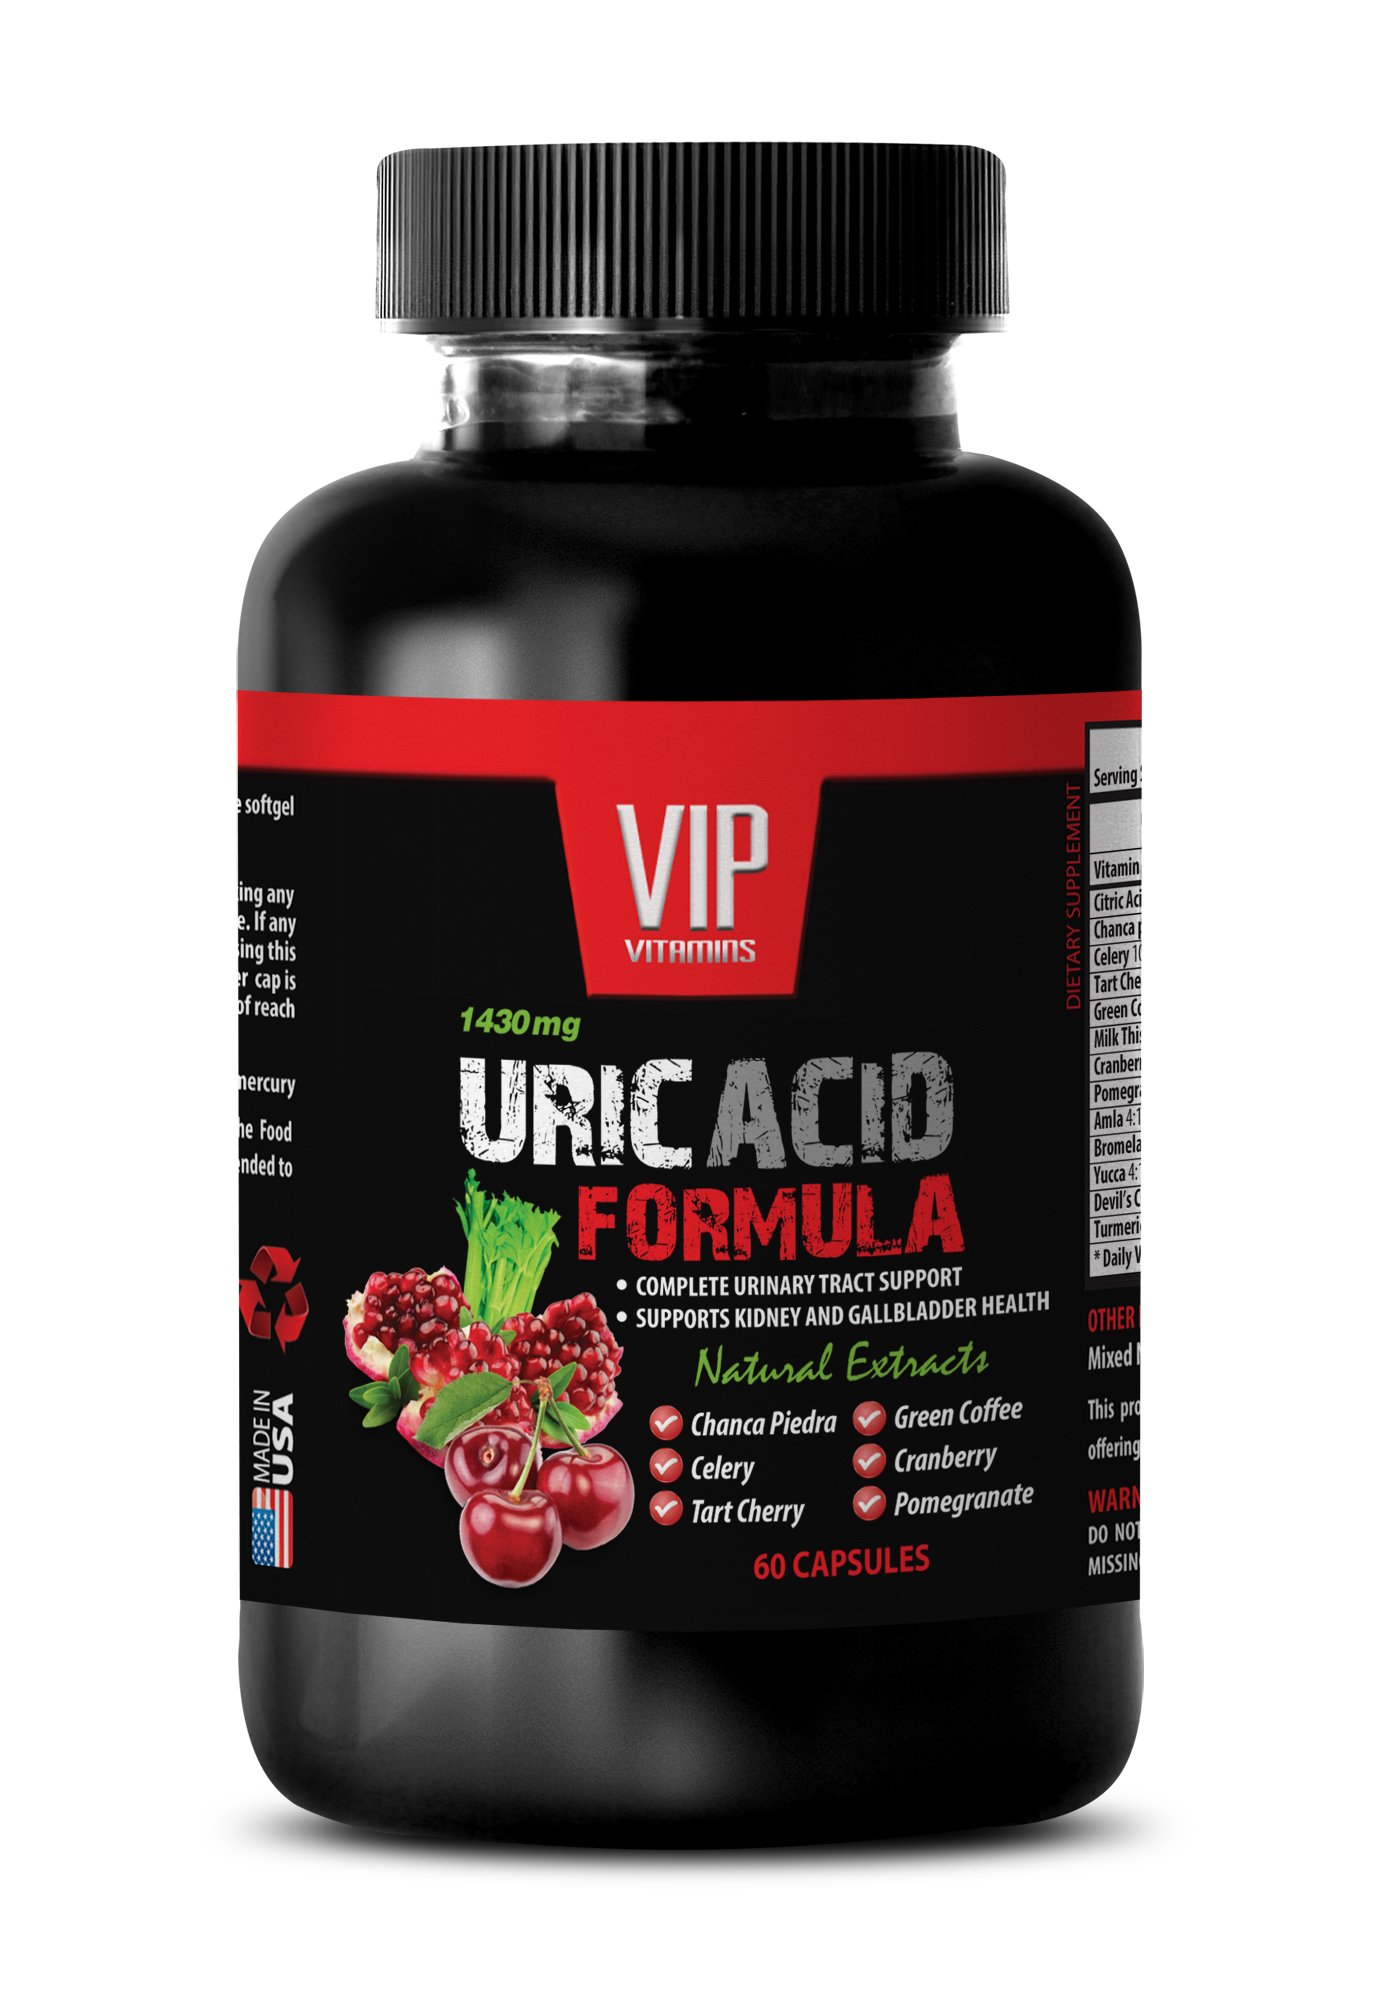 Kidney detox - URIC ACID FOMULA NATURAL EXTRACT 1430Mg - Astragalus, Birch Leaves, Buchu Leaves, Goldenrod, Horsetail - 1 Bottle 60 Capsules